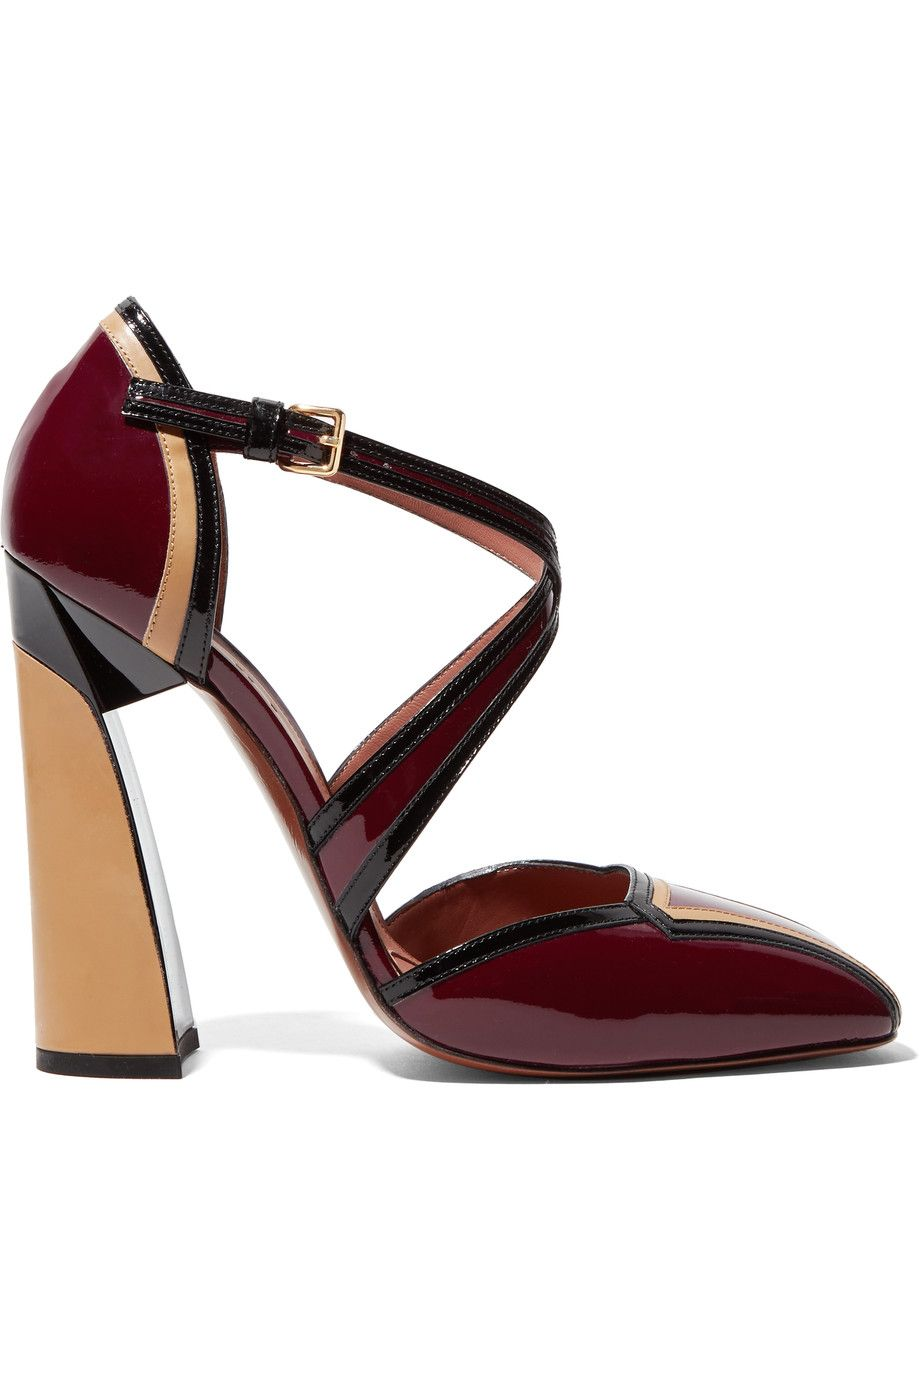 Marni Patent Leather Pumps free shipping 2014 SdgfJ